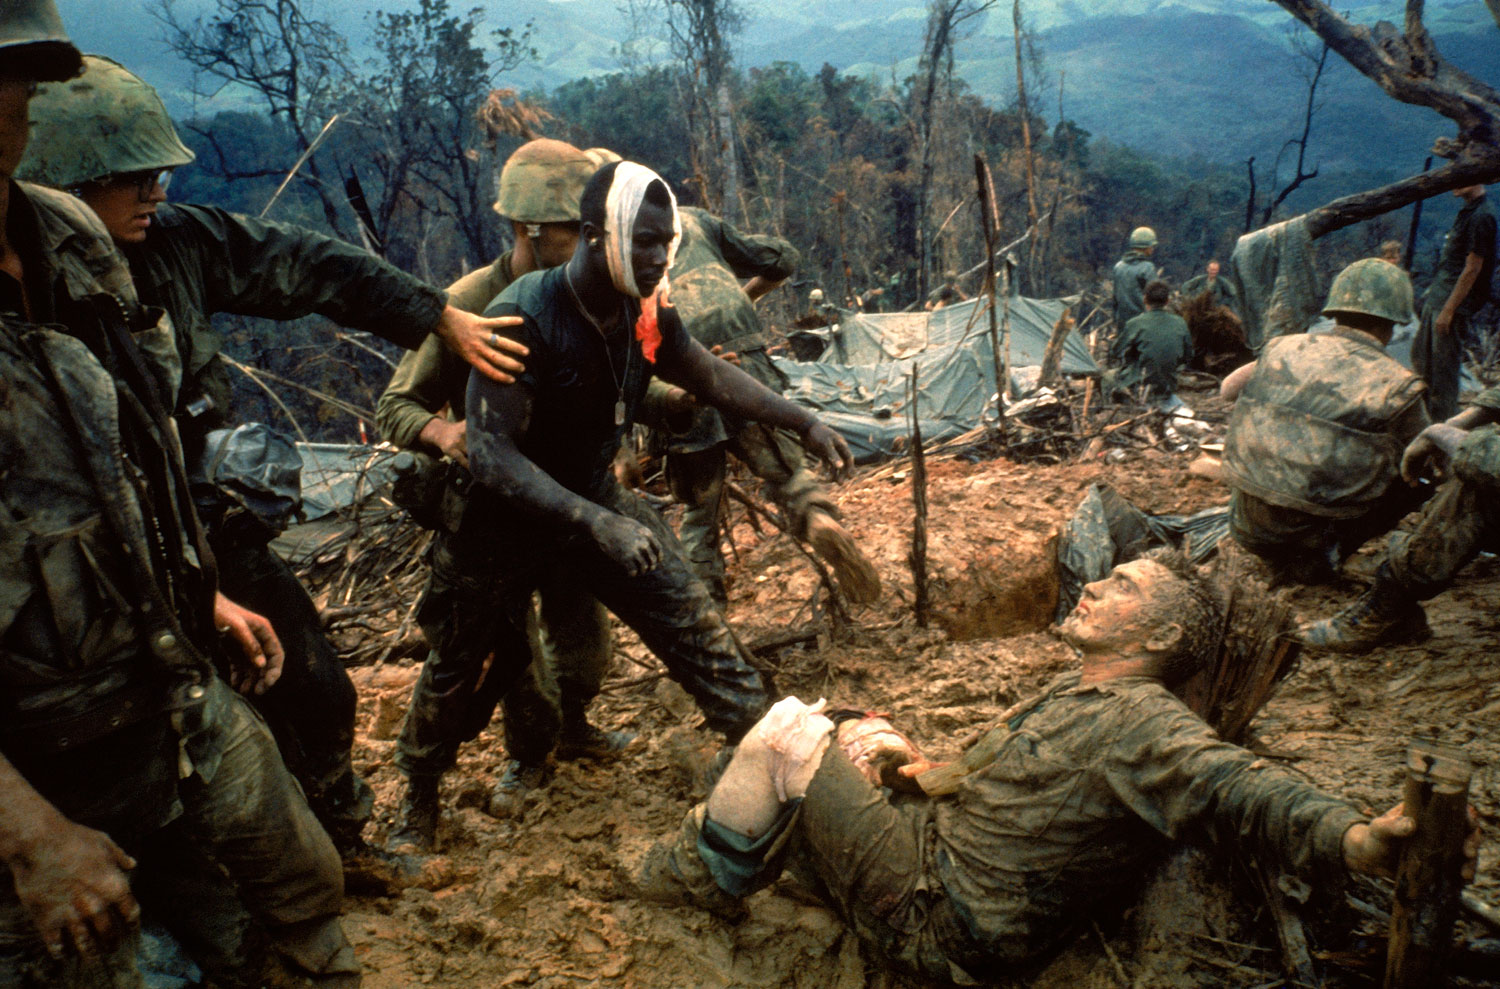 Wounded Marine Gunnery Sgt. Jeremiah Purdie (center, with bandaged head) reaches toward a stricken comrade after a fierce firefight south of the DMZ, Vietnam, October 1966.